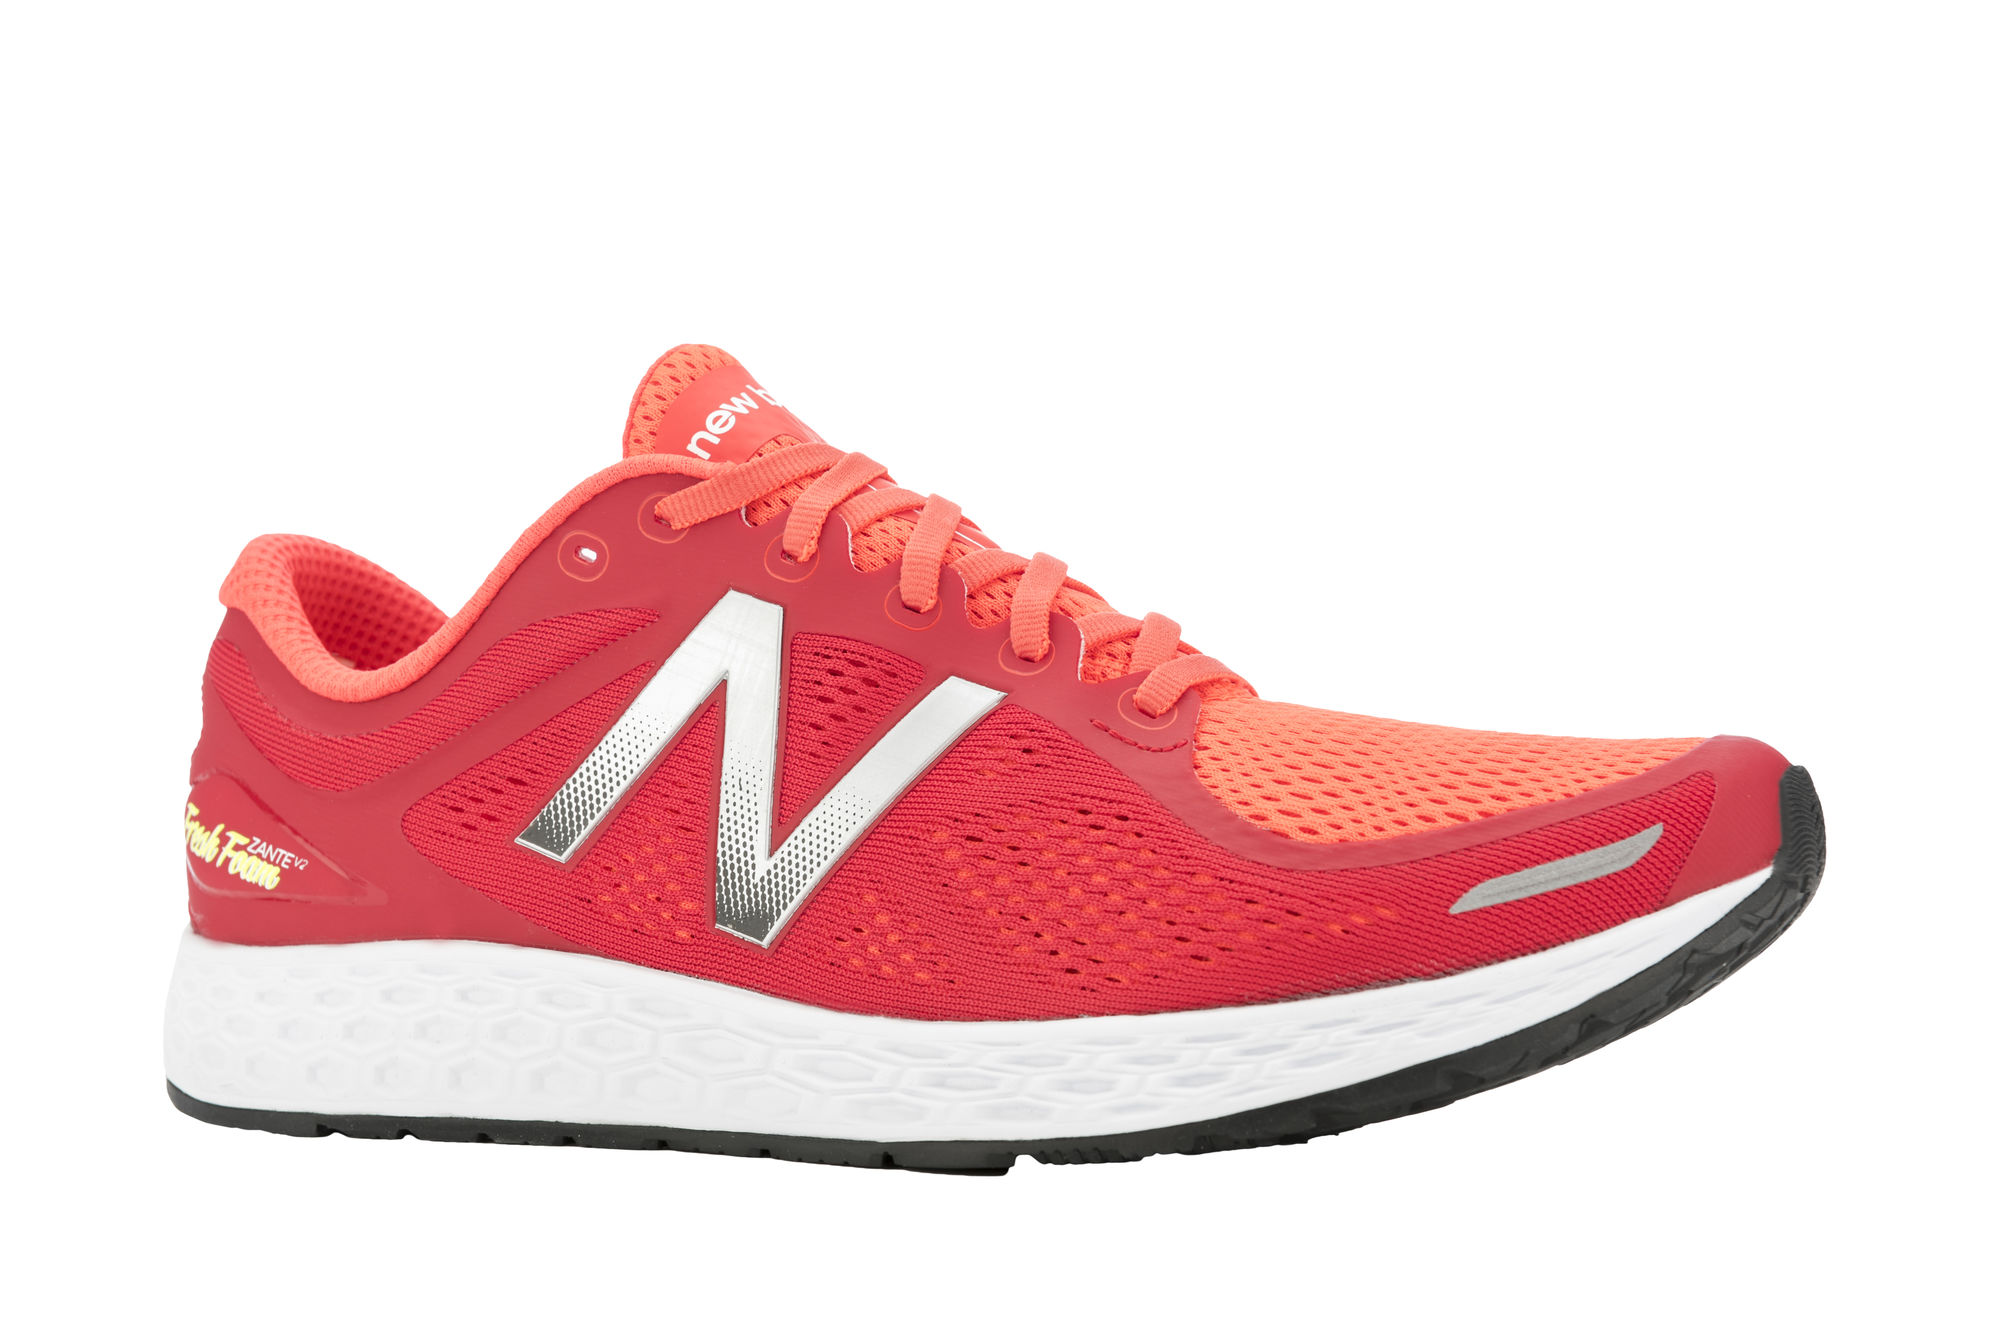 New Balance Zante V2 in Red/Silver